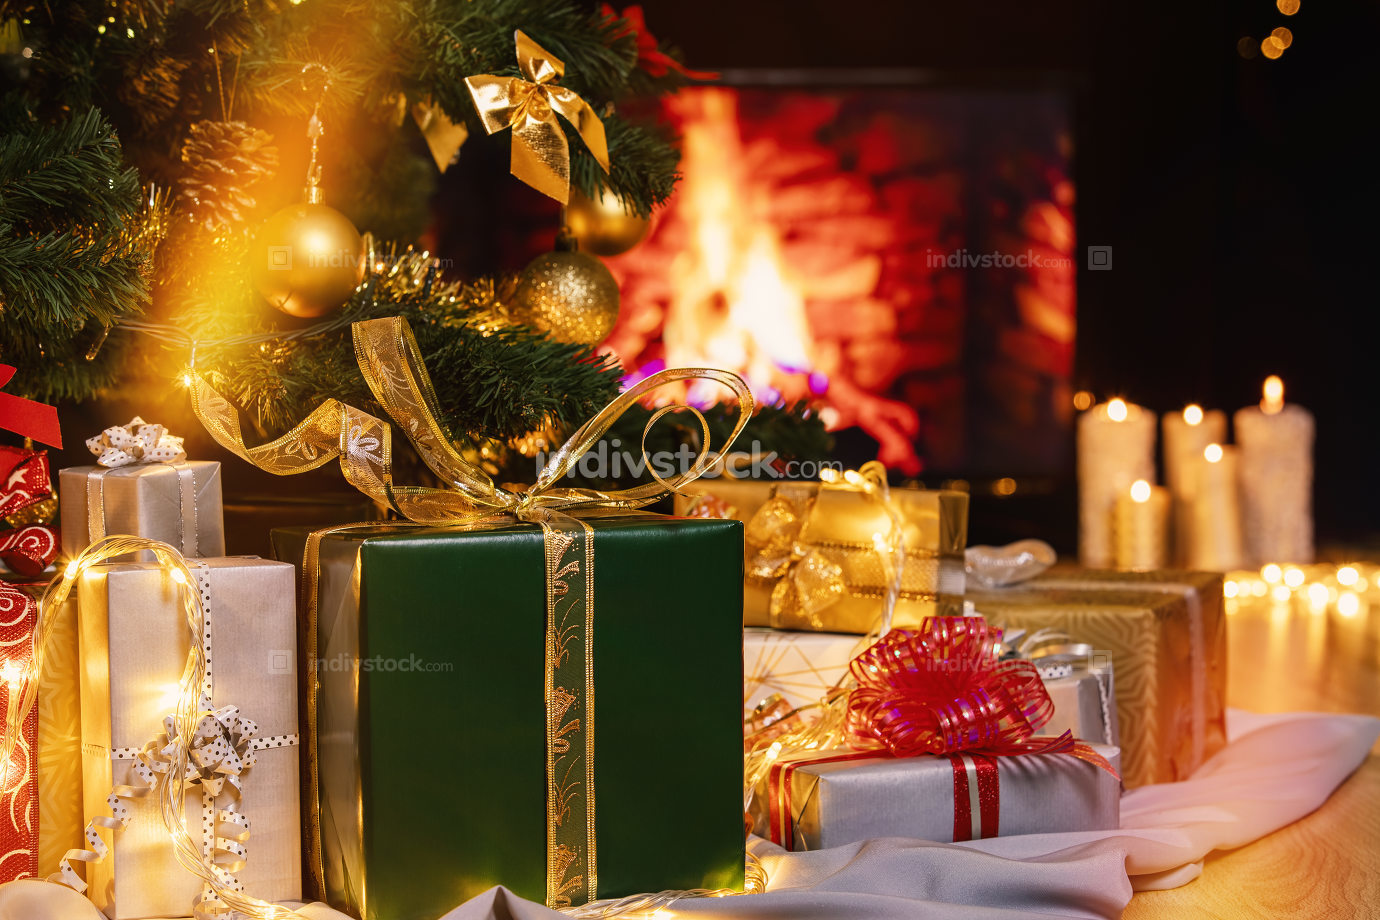 Christmas presents and candles under Christmas tree